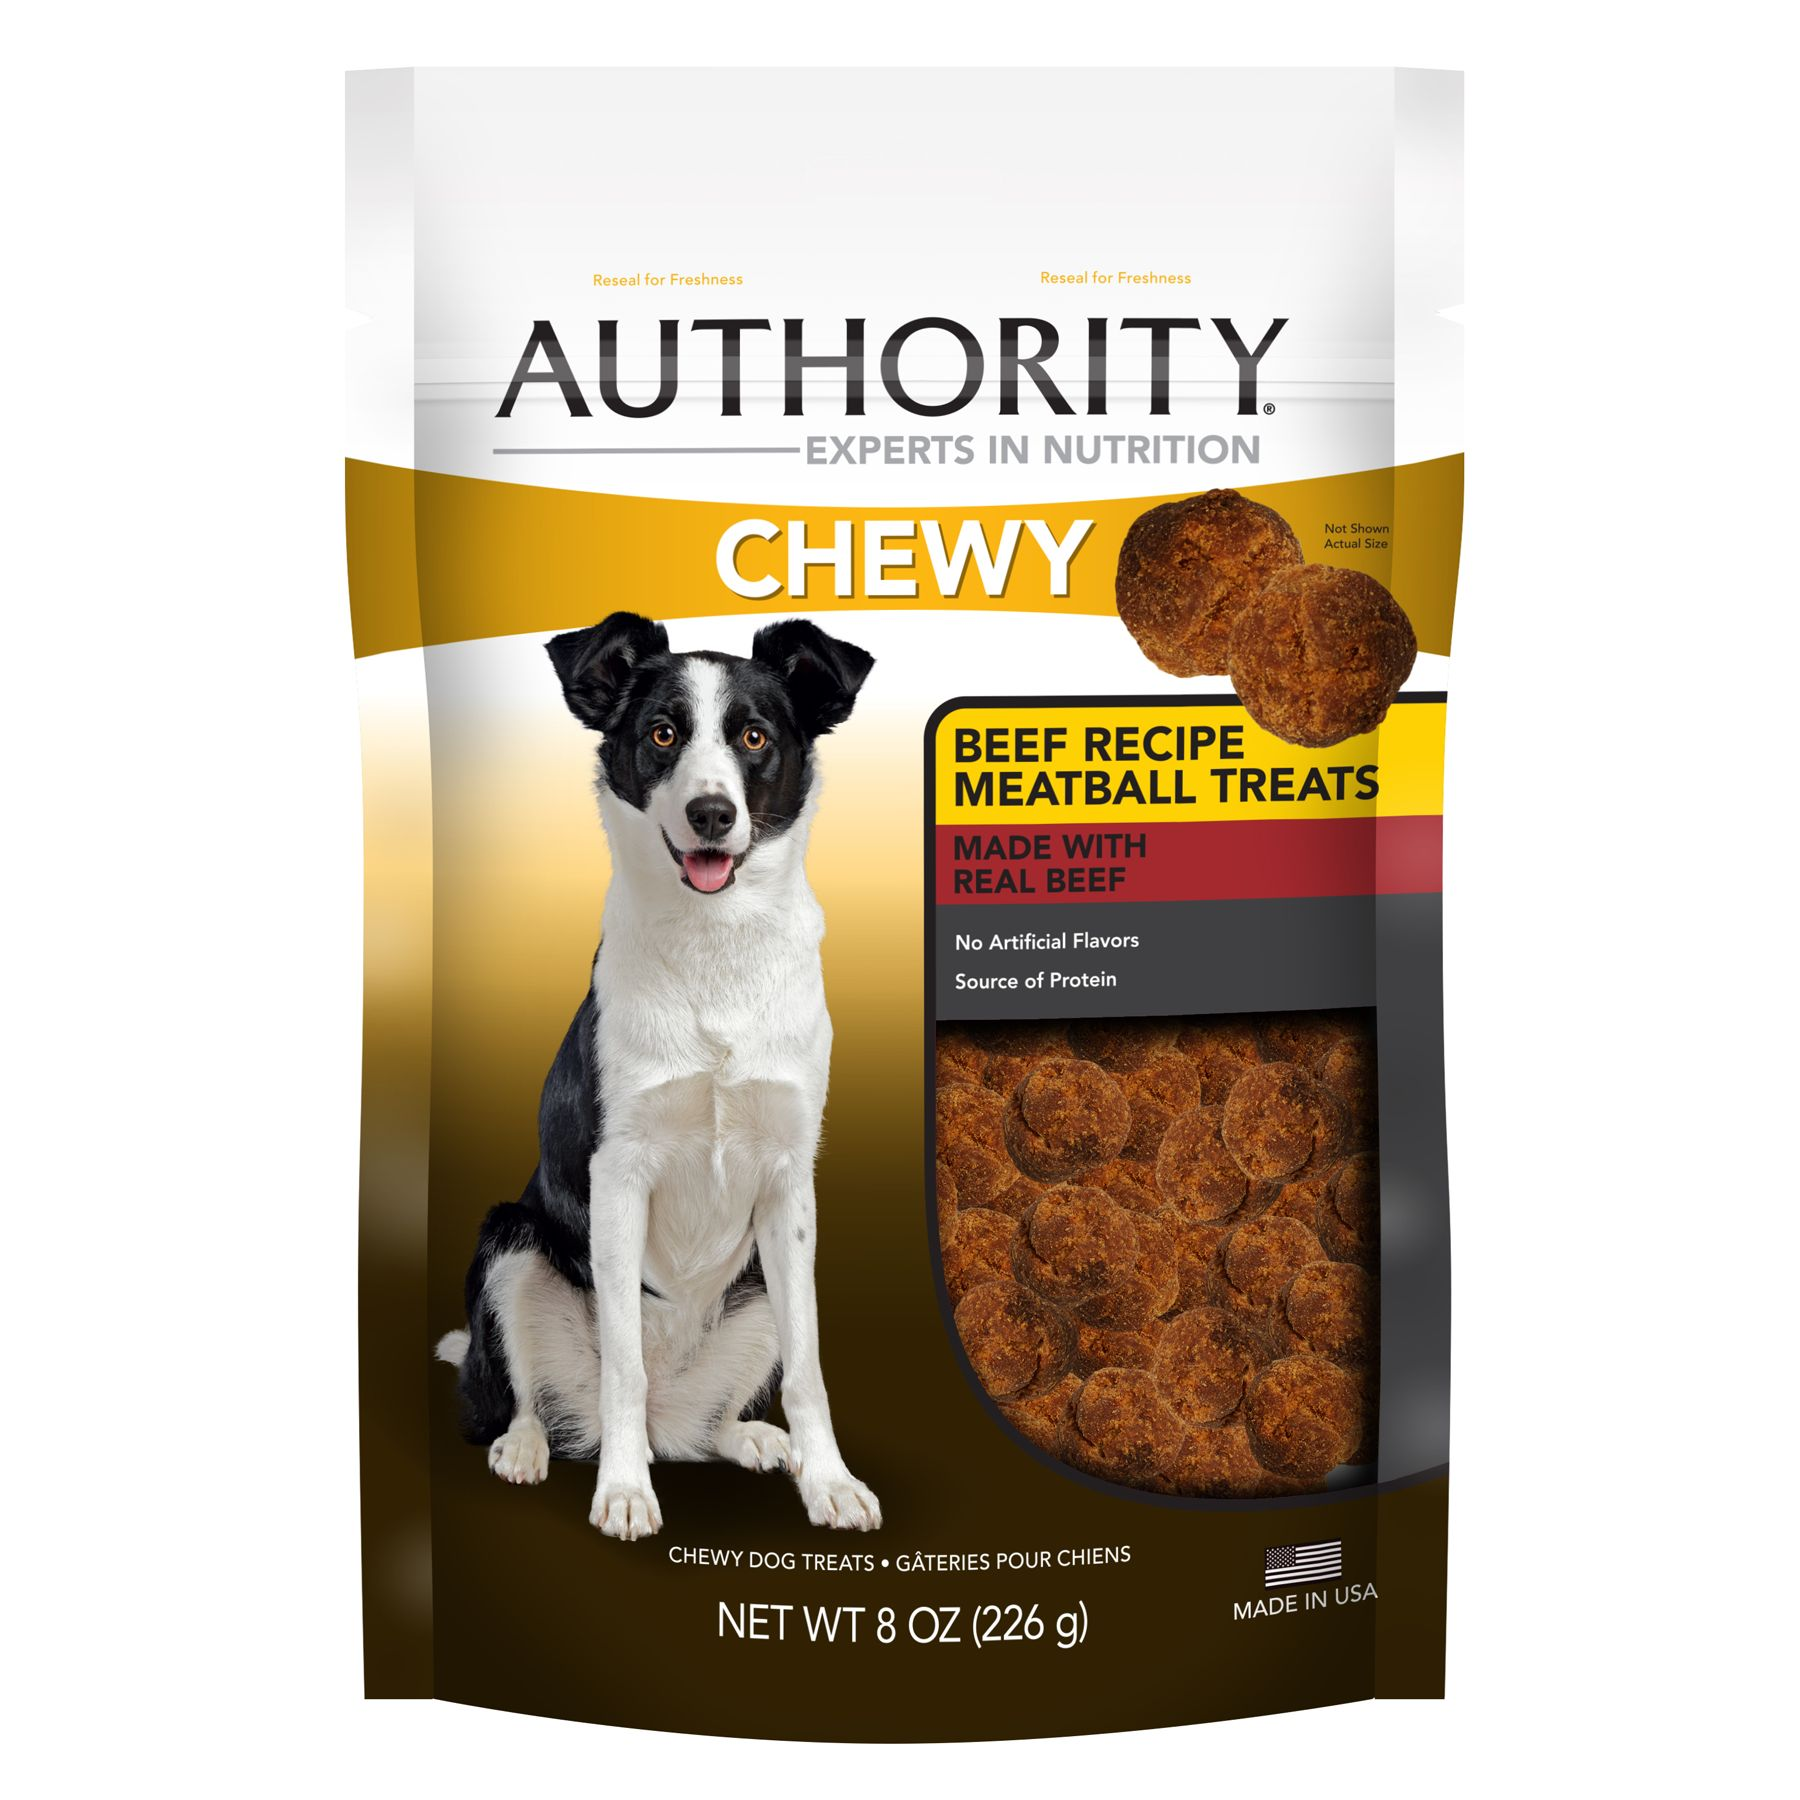 Authority® Chewy Dog Treat - Beef Meatball size: 8 Oz